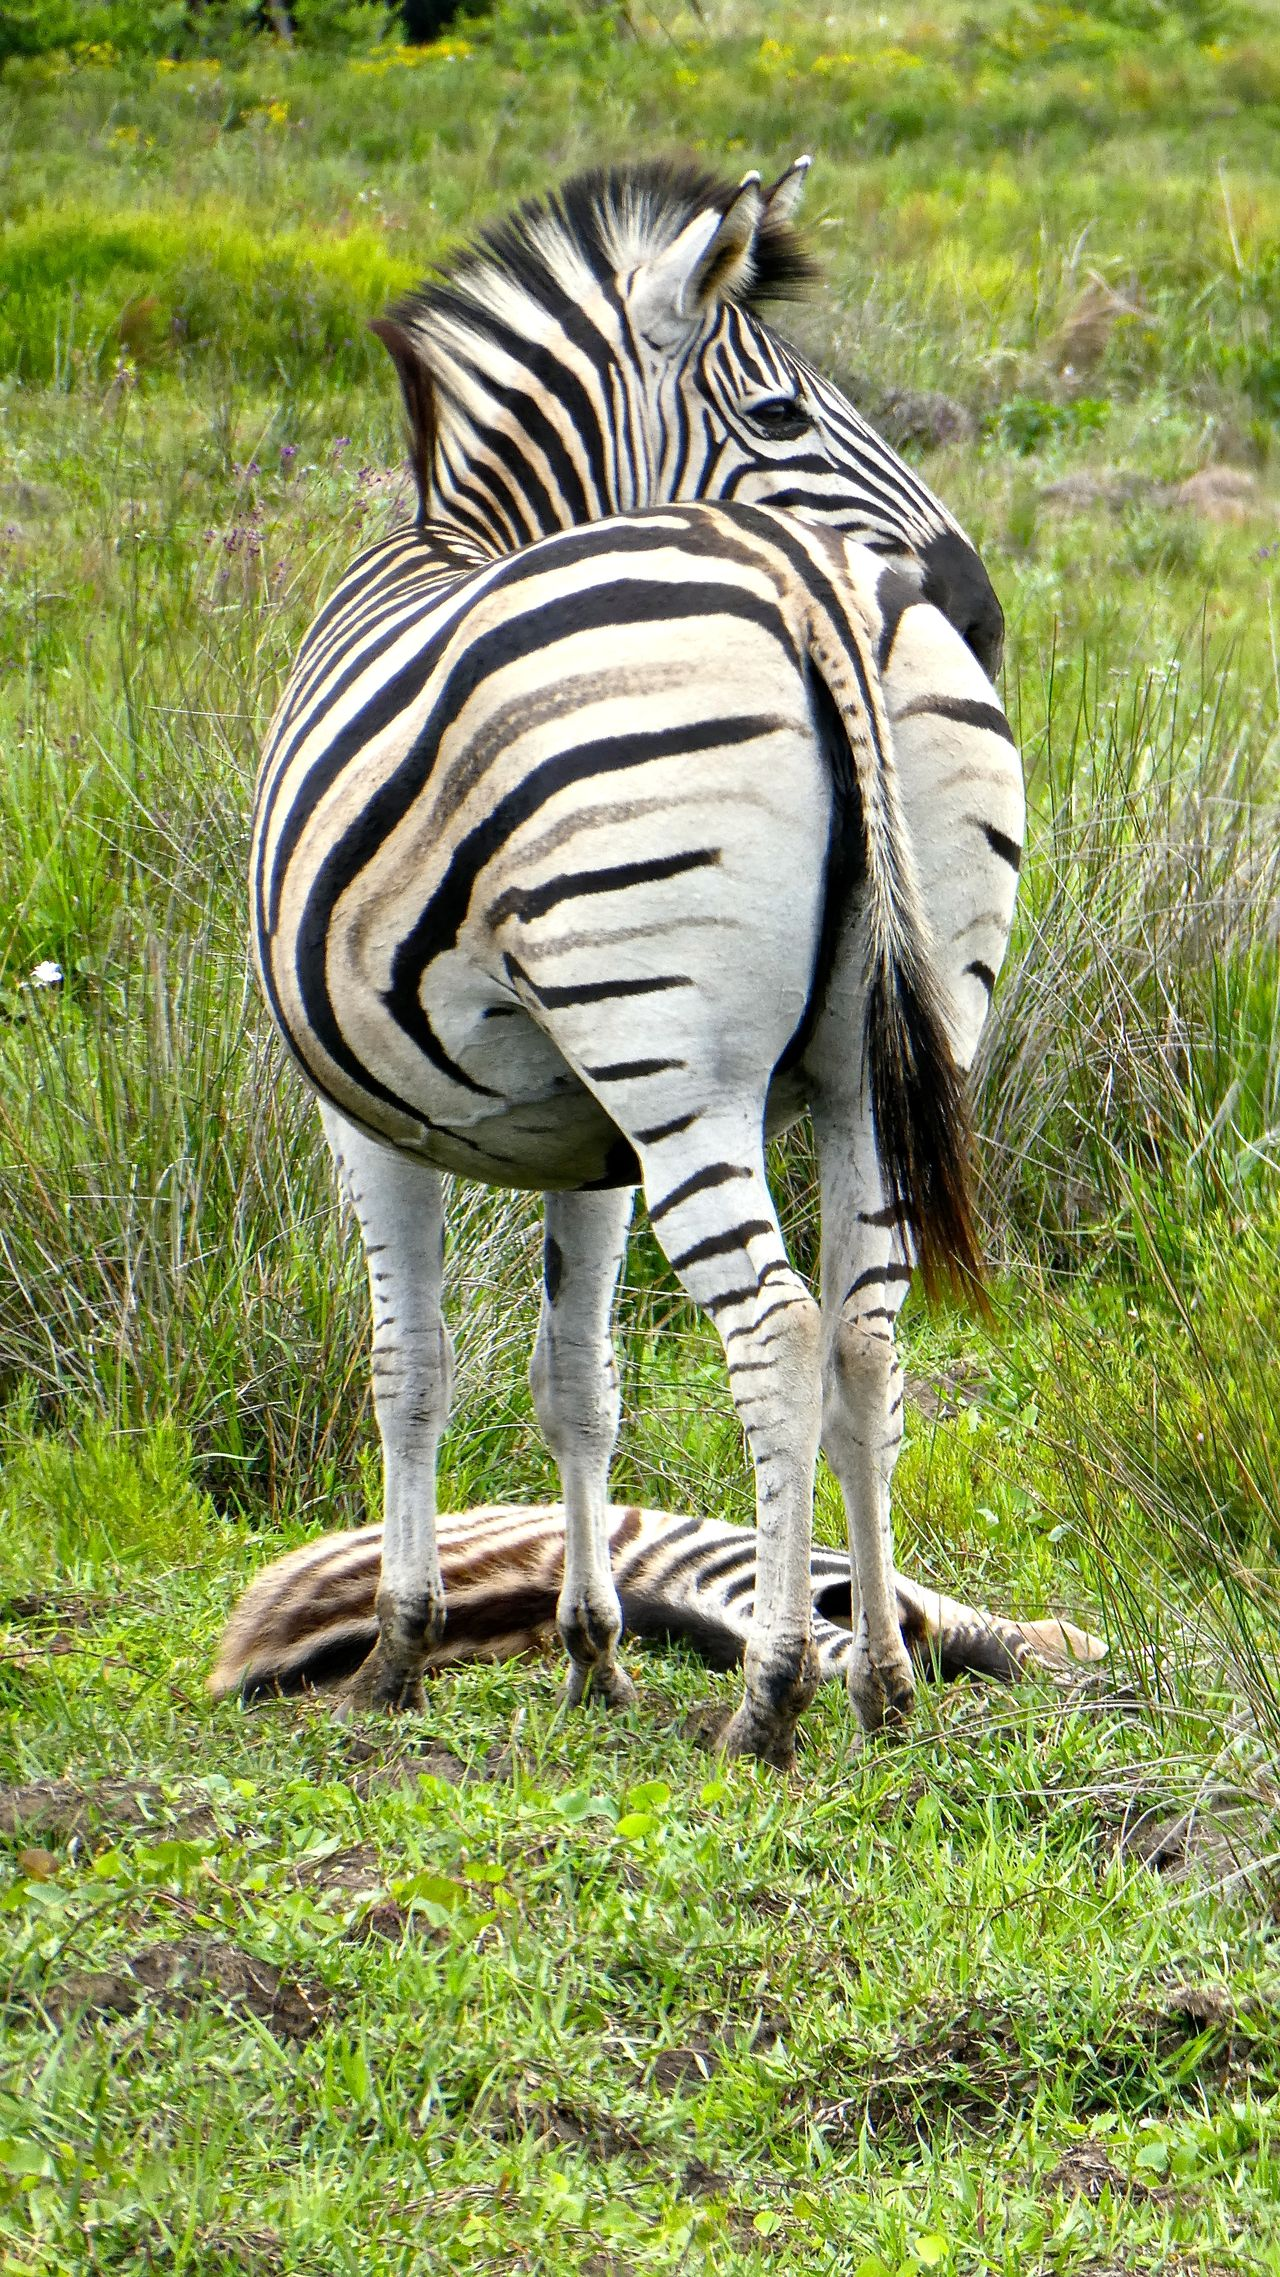 Animal Markings Animal Themes Animal Wildlife Animals In The Wild Grass ISimangaliso Wetland ISimangaliso Wetland Park Kwazulu Natal Kwazulunatal Nature No People Outdoors Safari Safari Animals Safari Park Safaripark Southafrica SouthAfrican St Lucia Wetland Park Striped Südafrika Zebra